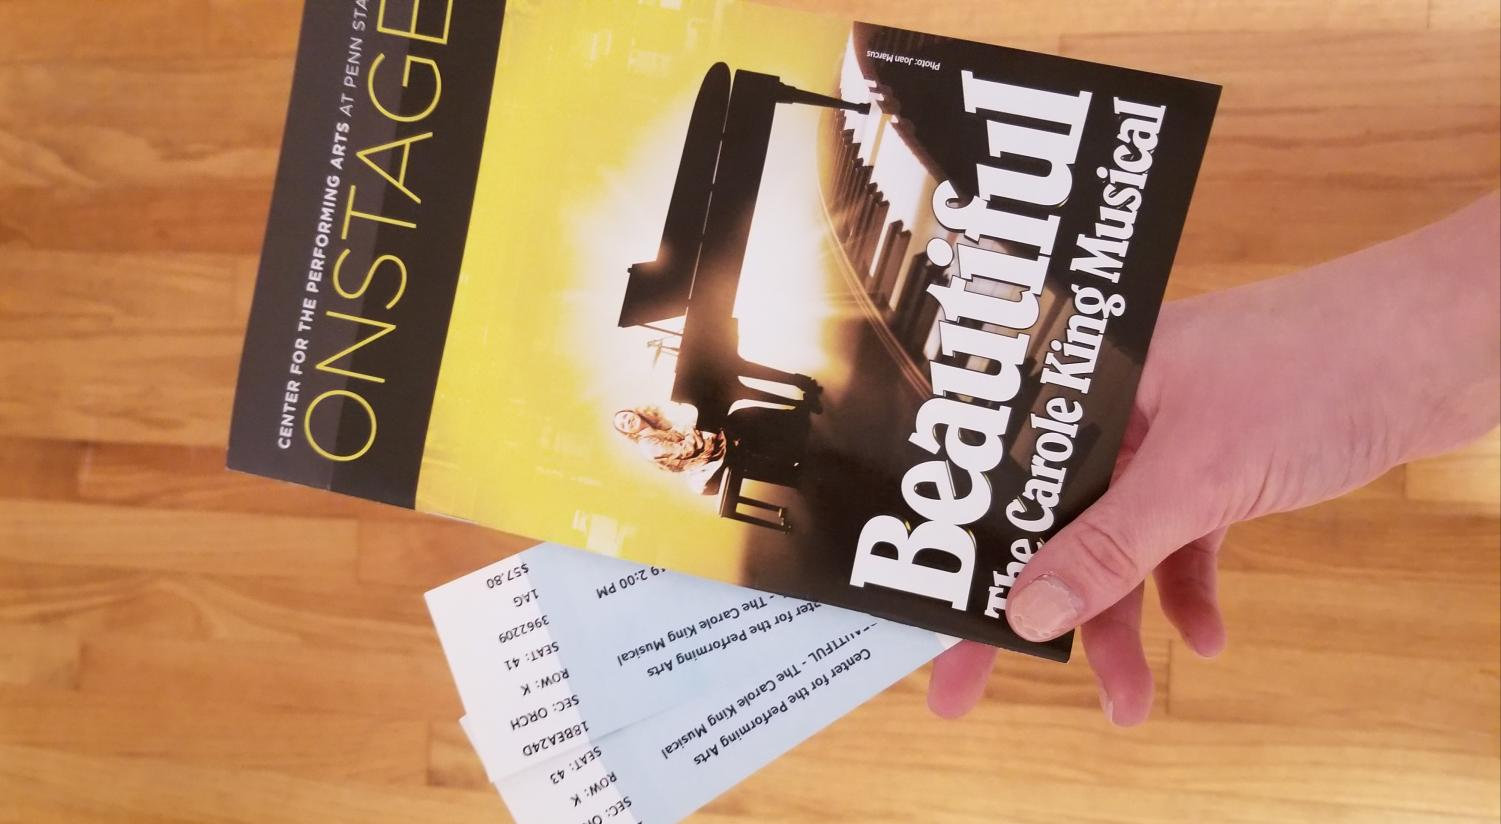 The playbill of the Center for the Performing Arts at Penn State musical, Beautiful the Carole King Musical. You can find the dates and locations for the rest of the tour at https://beautifulonbroadway.com/tour/.